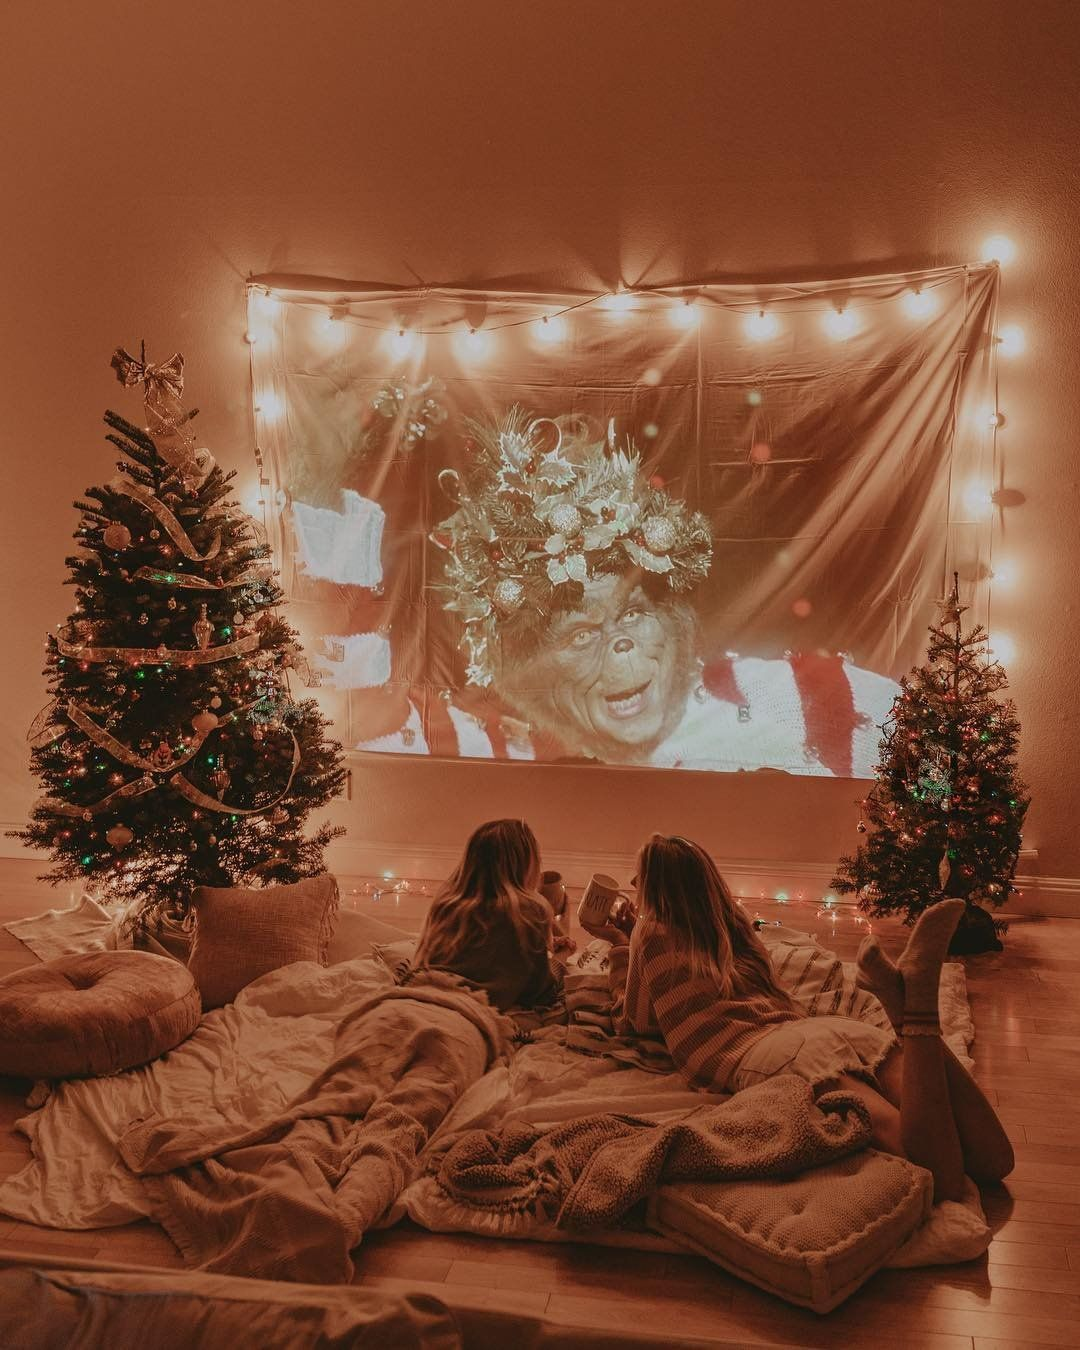 Uotech Christmas Movie Night Christmas Bedroom Cozy Christmas